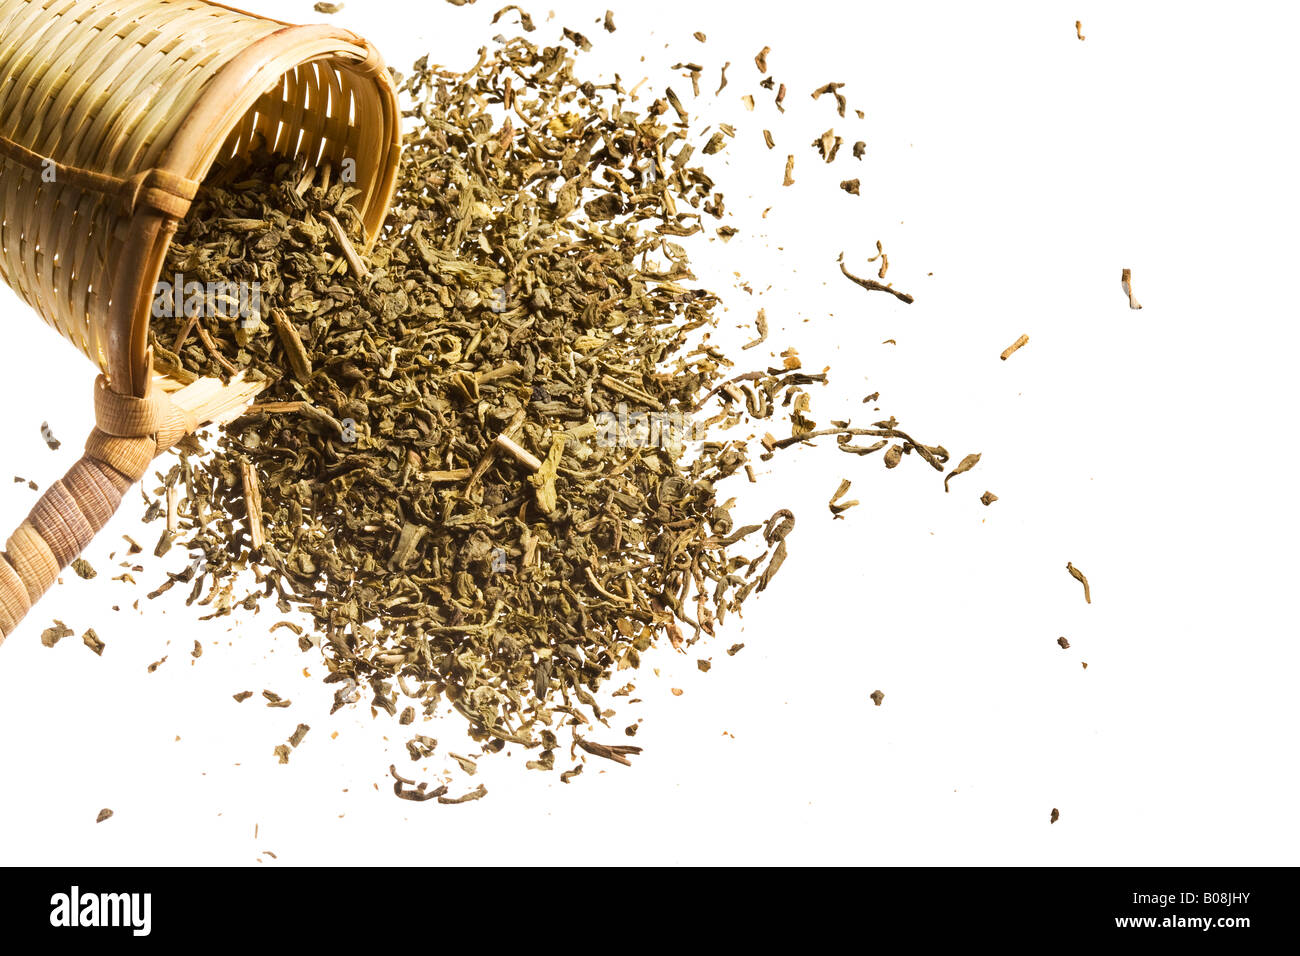 An overspilling scoop of raw tea. - Stock Image